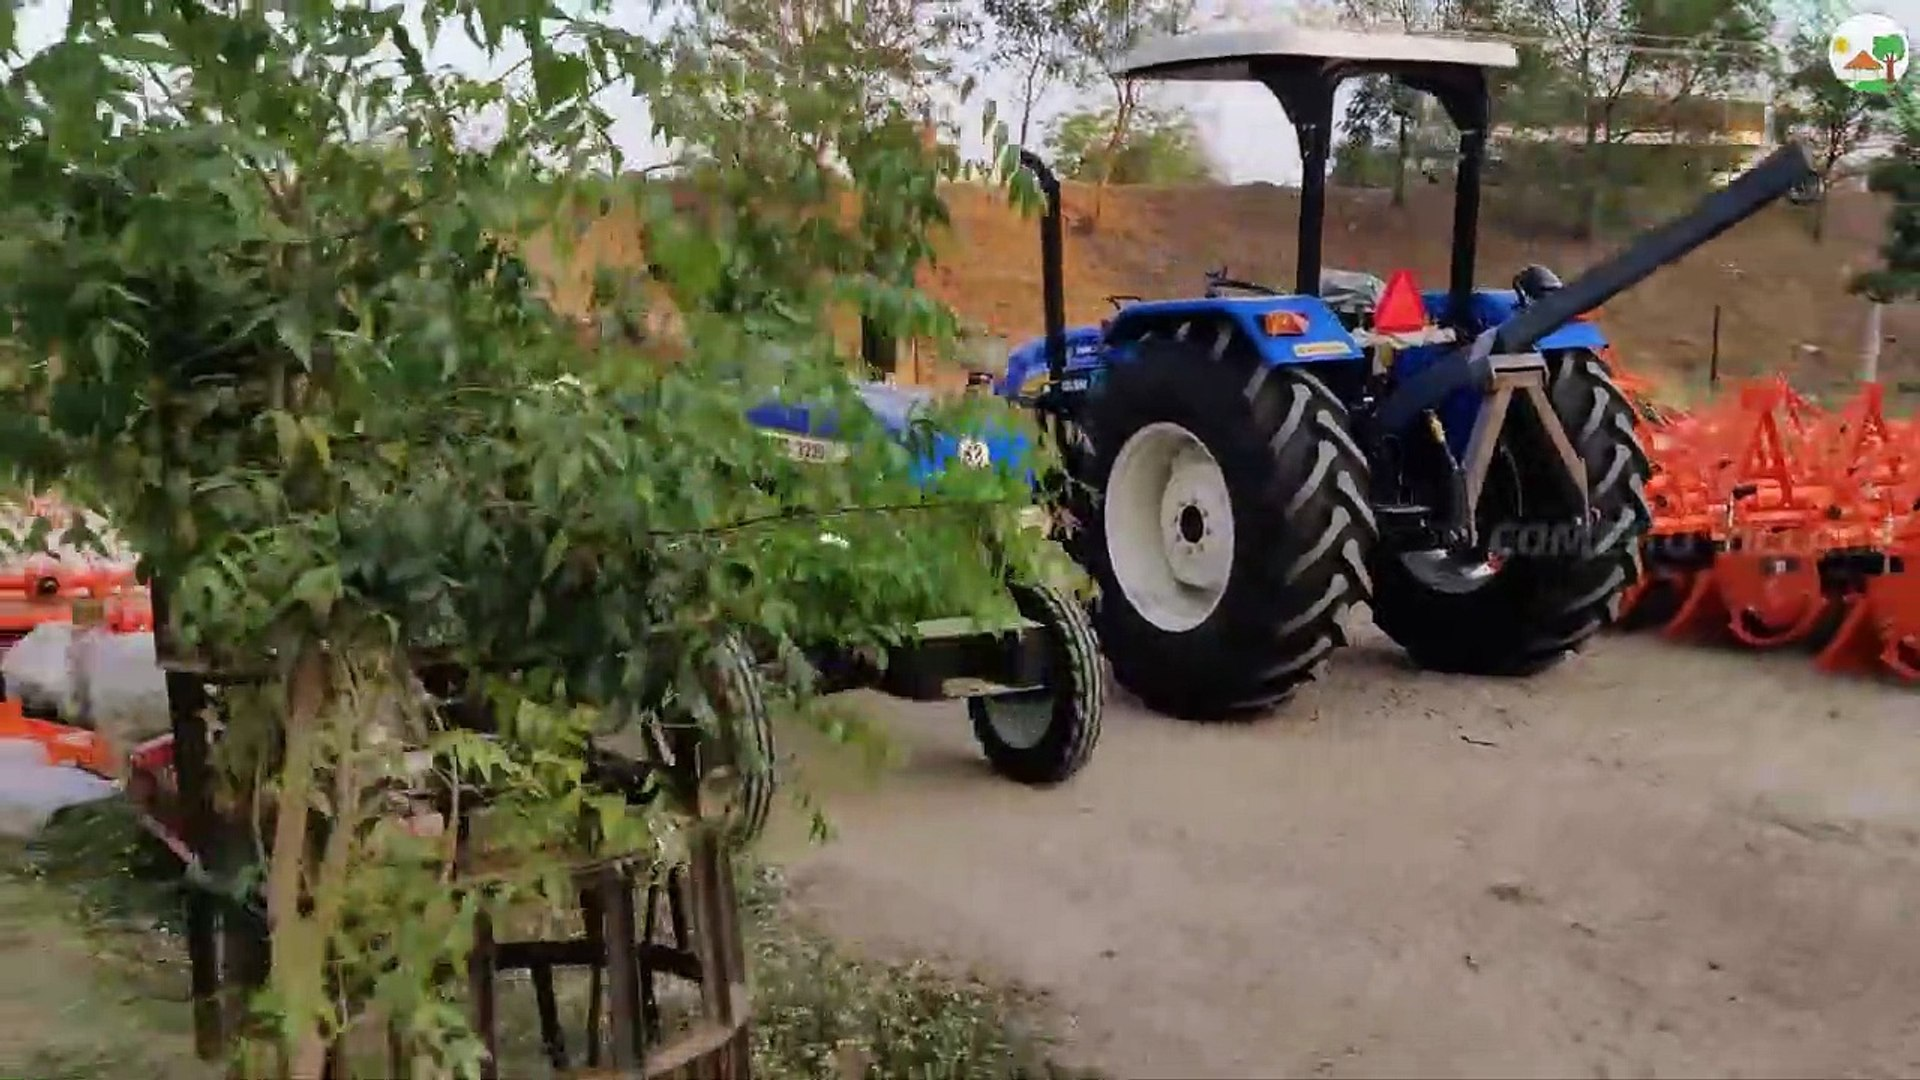 Daily Routine work in Tractor Showroom | New Holland Tractor Dealer - Come To Village |